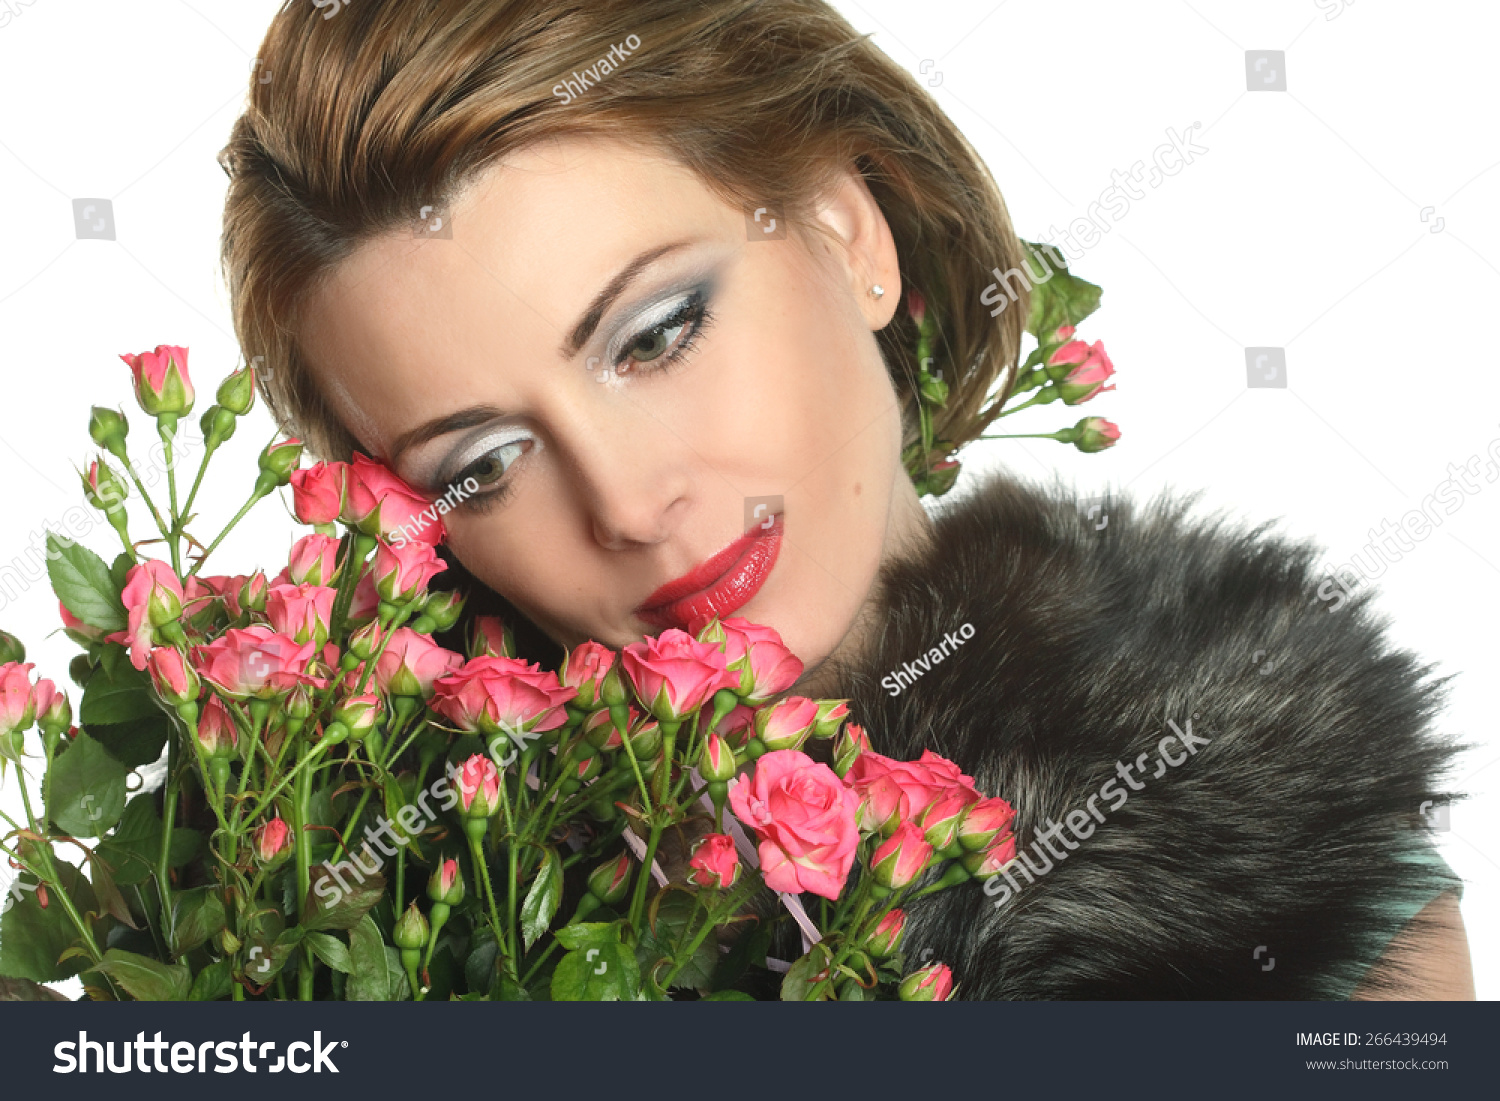 Young beautiful woman with flowers on a white background stylish id 266439494 izmirmasajfo